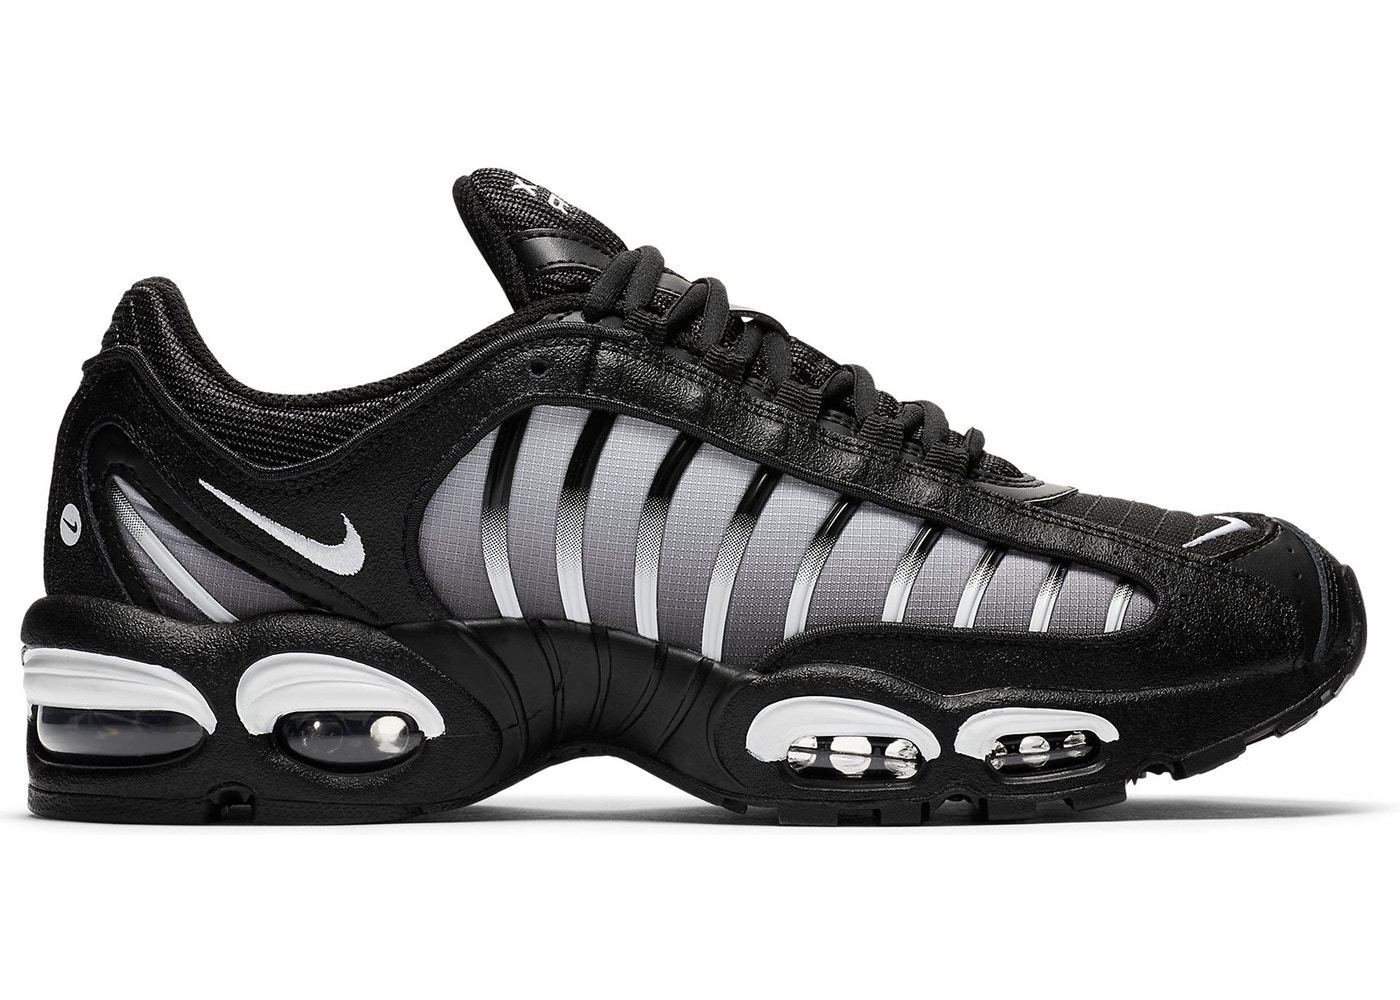 Nike Air Max Shoes Release Date